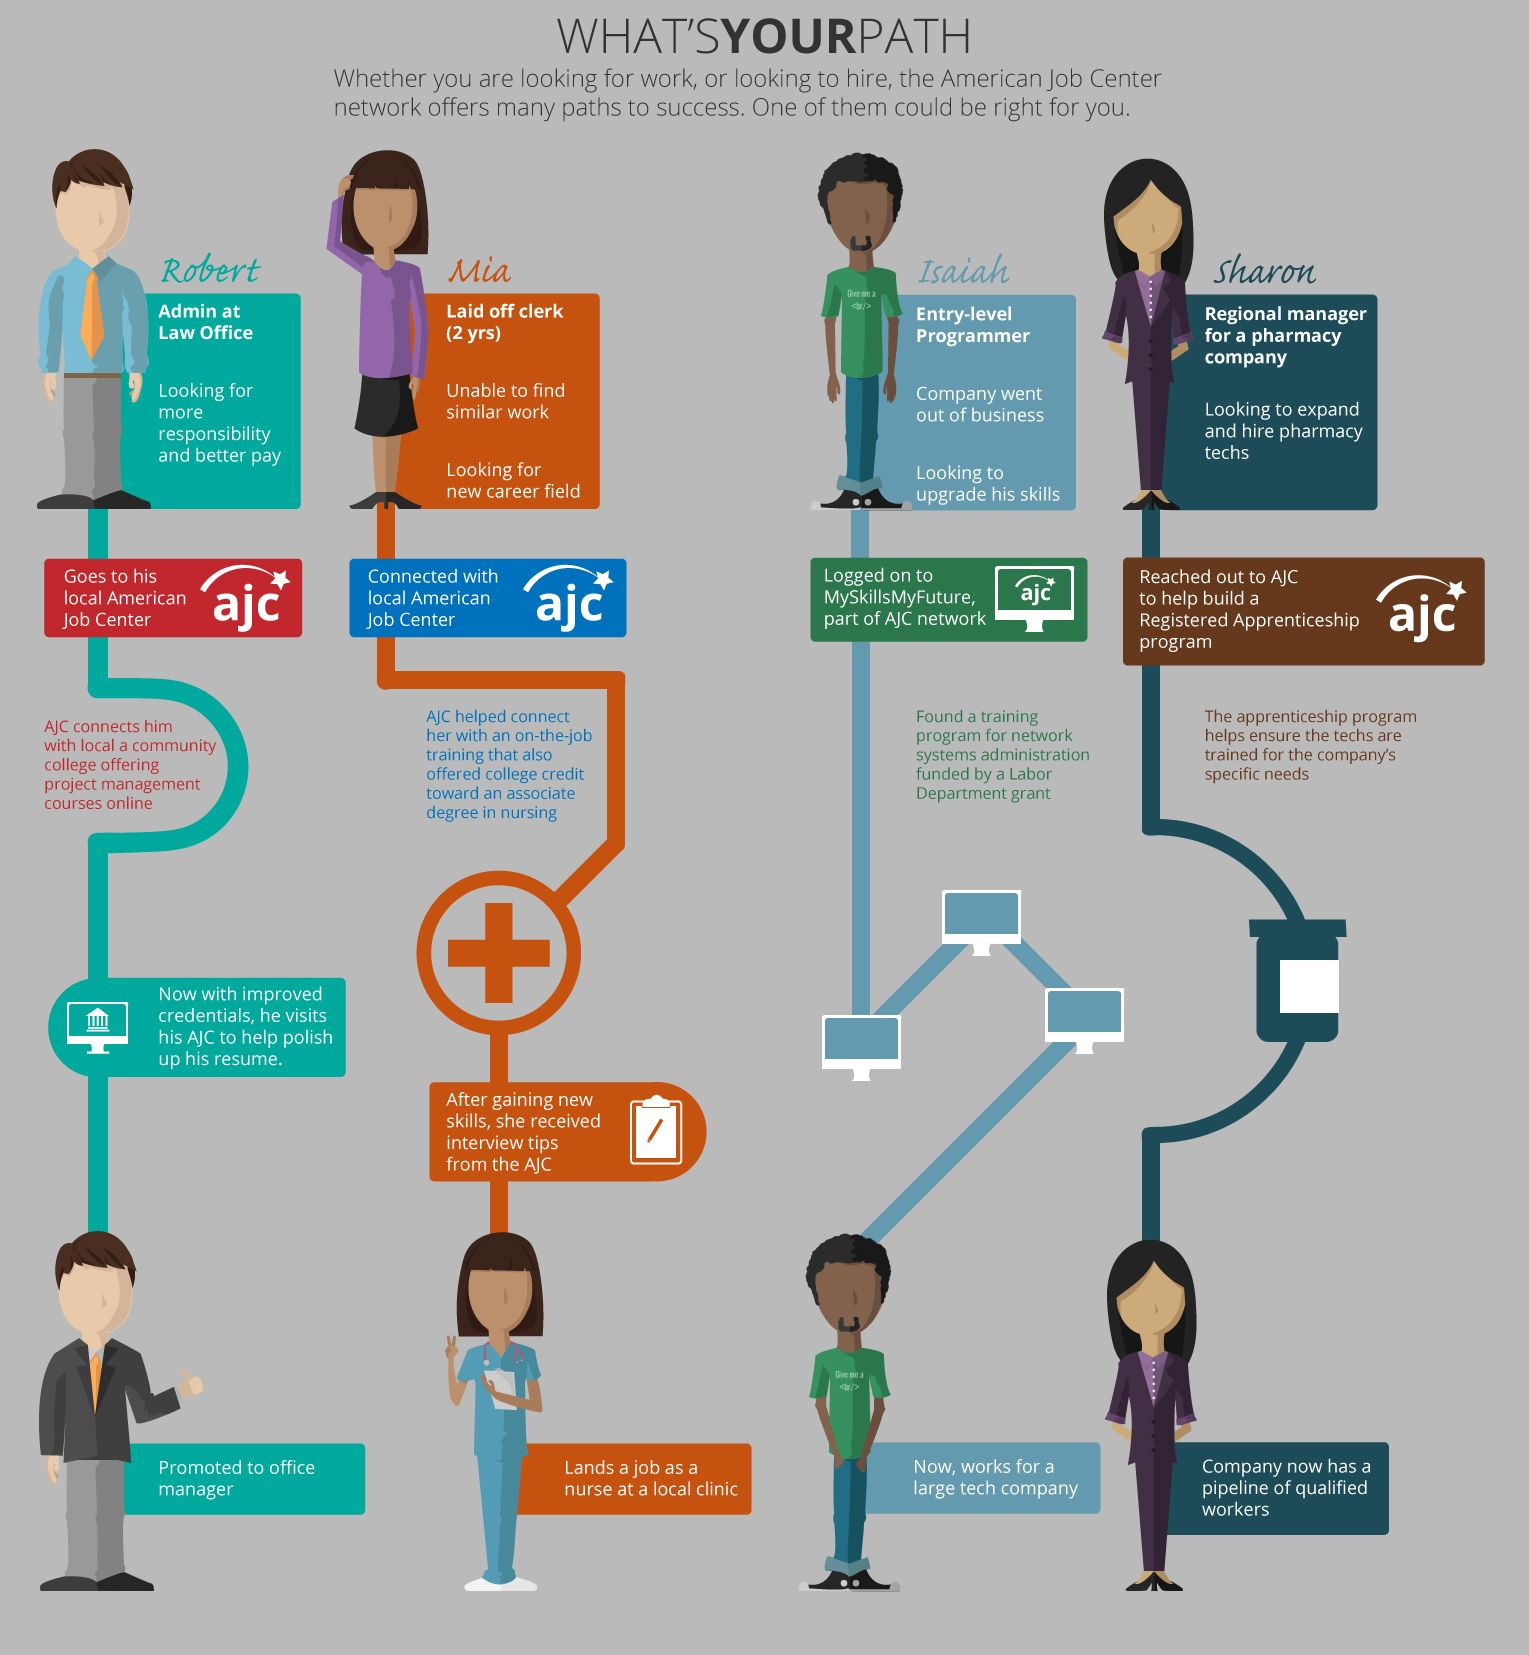 infographic showing career path google search graphic for infographic showing career path google search